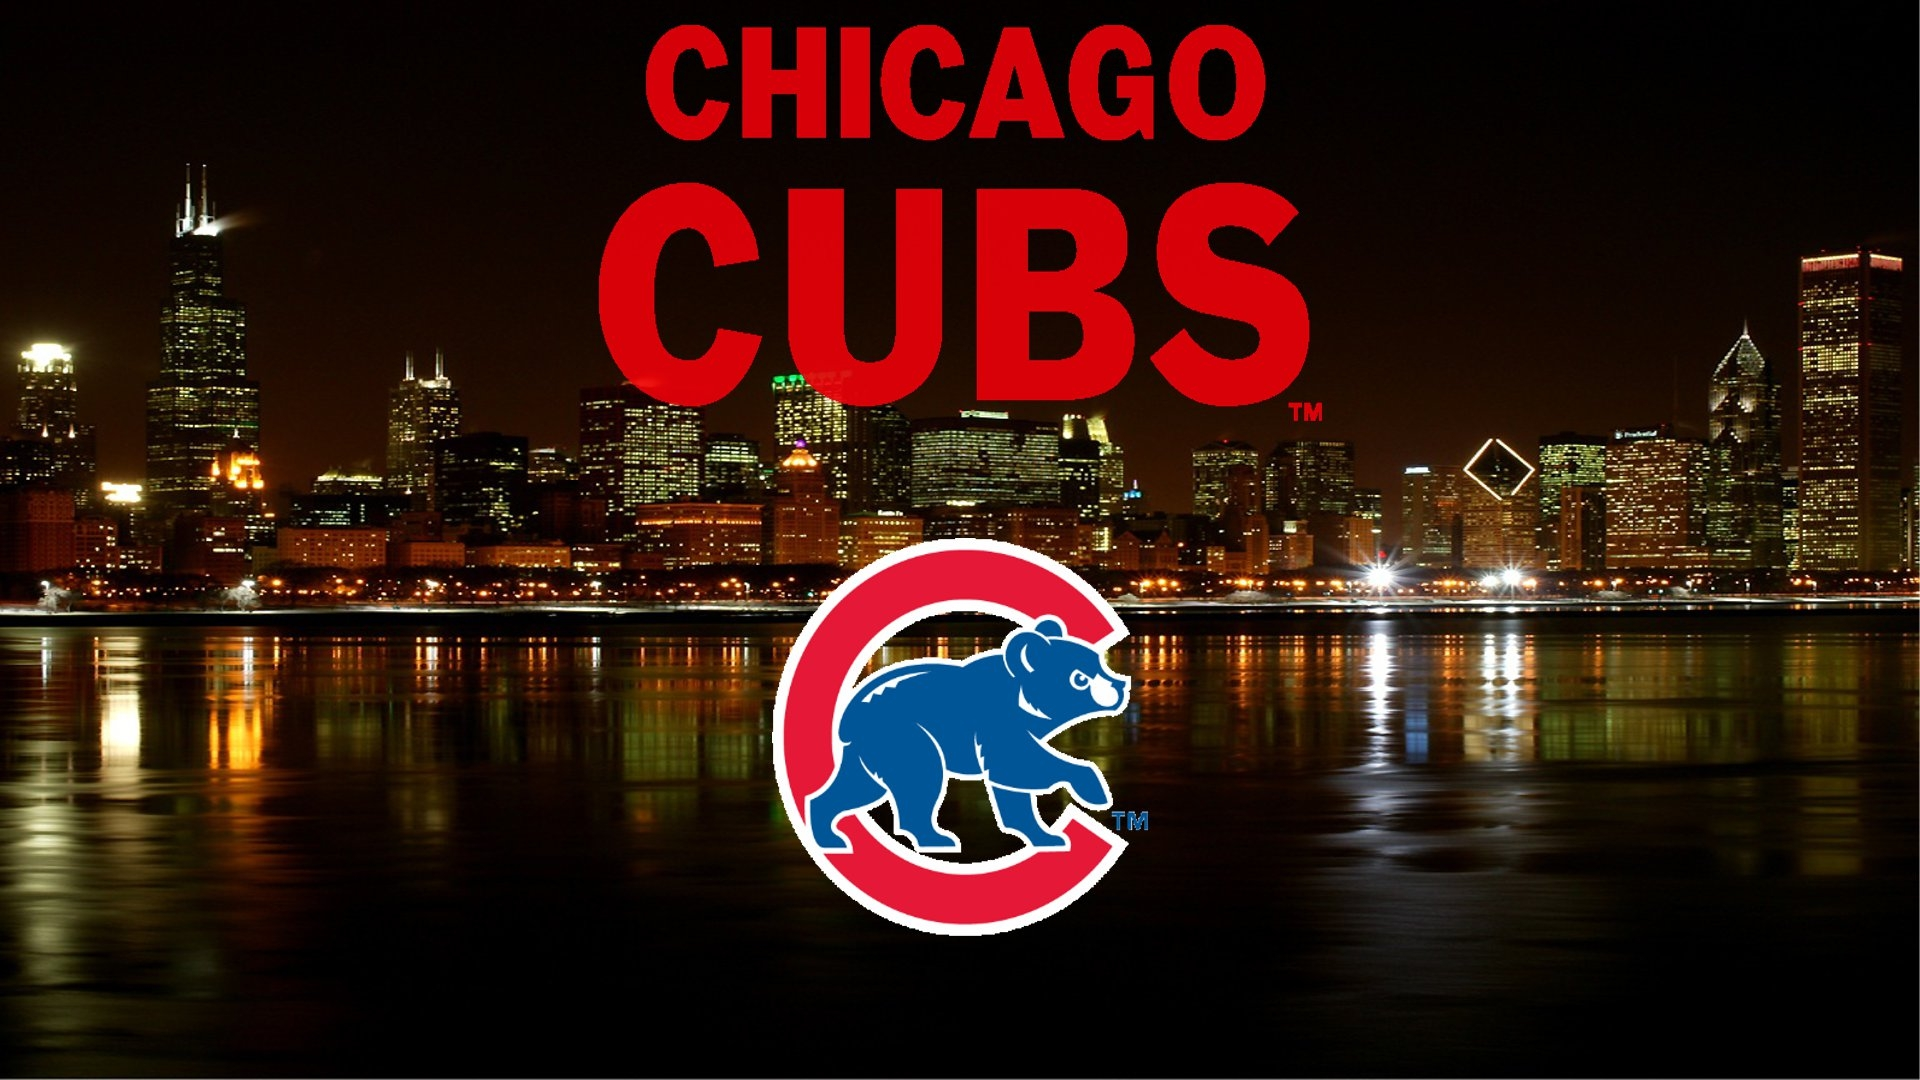 1920x1080 - Chicago Cubs Wallpapers 7